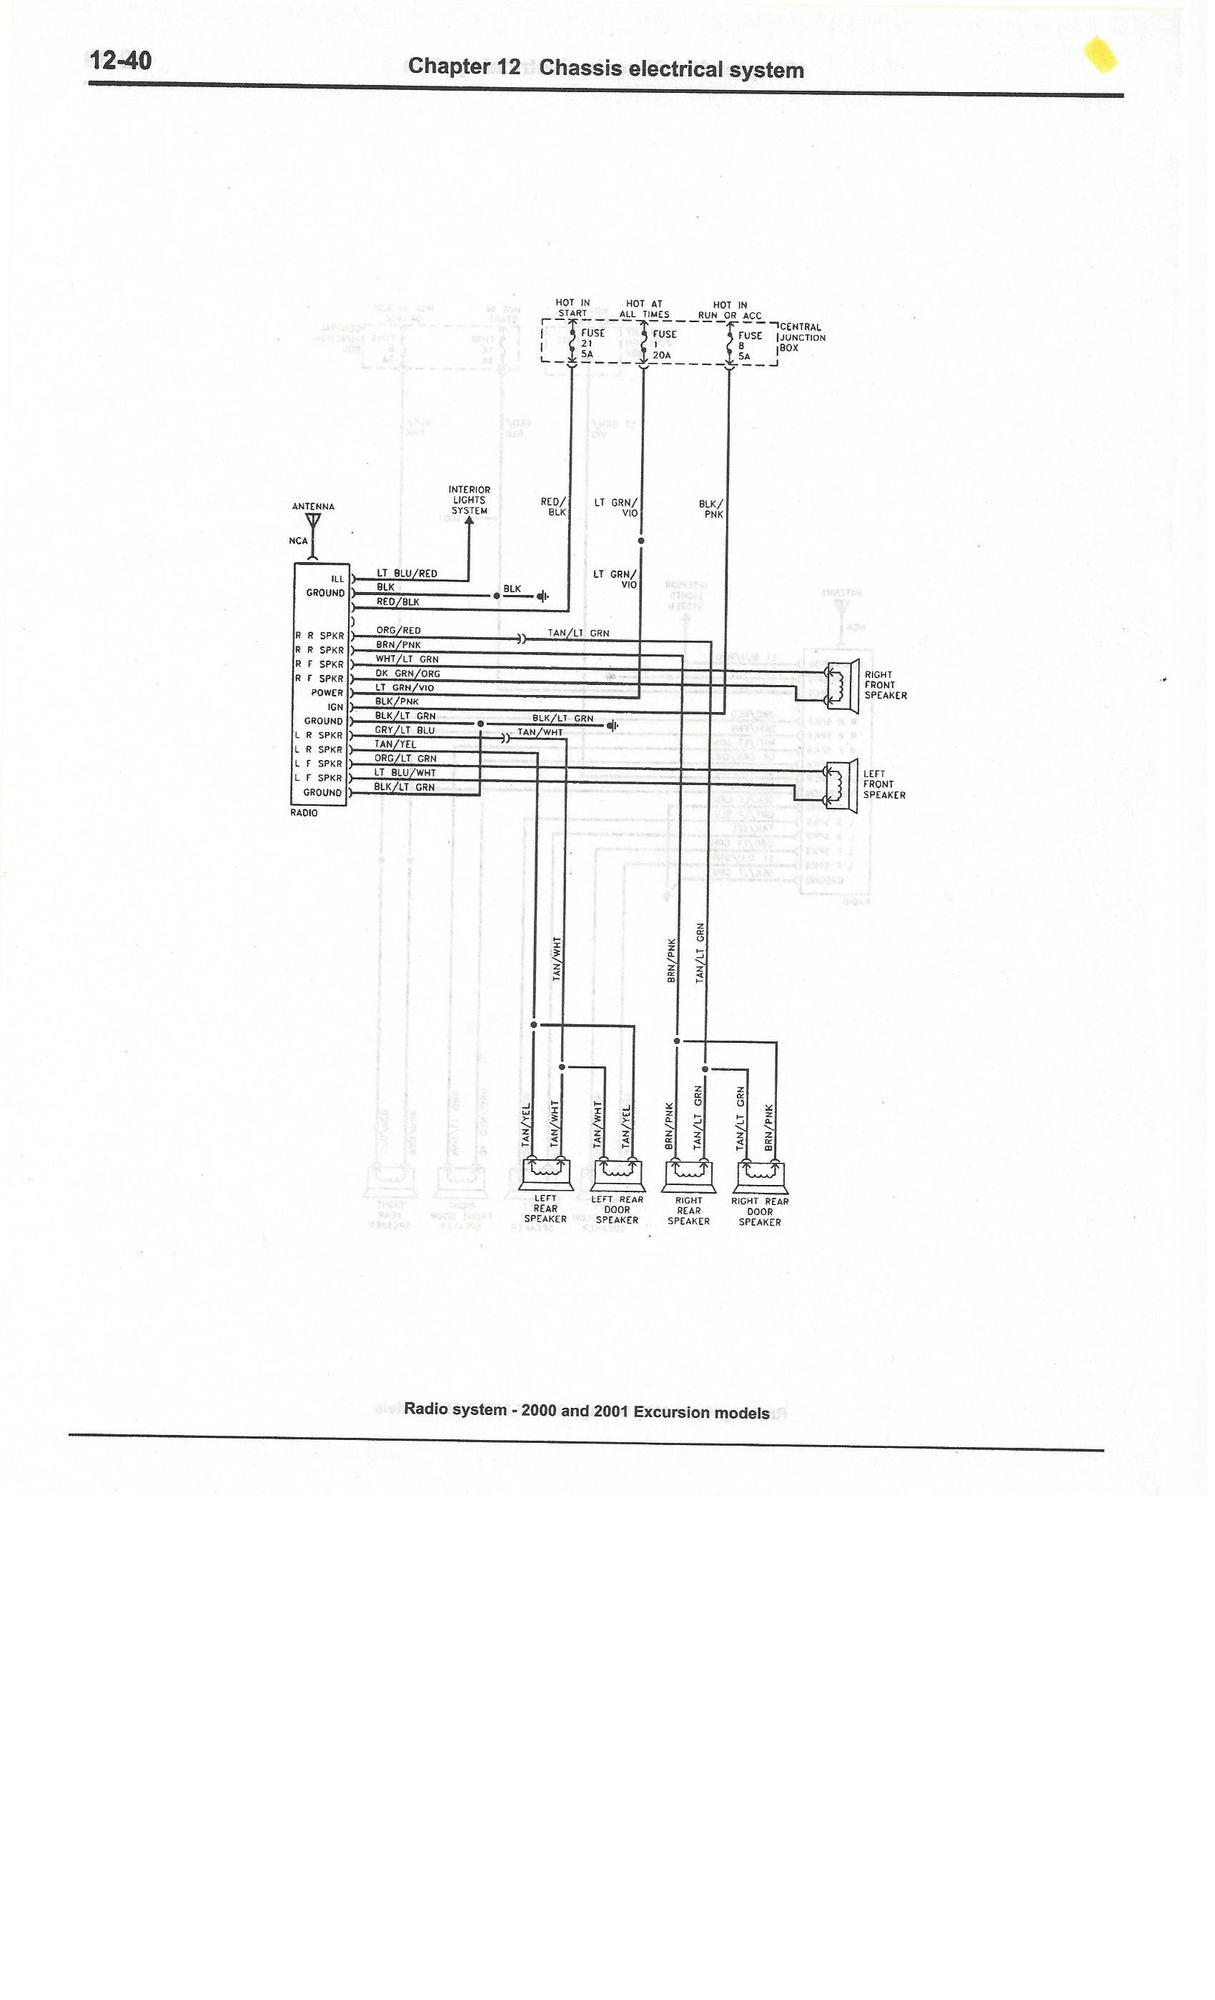 hight resolution of 01 excursion v8 engine diagram completed wiring diagram01 excursion v8 engine diagram wiring diagrams update 1985